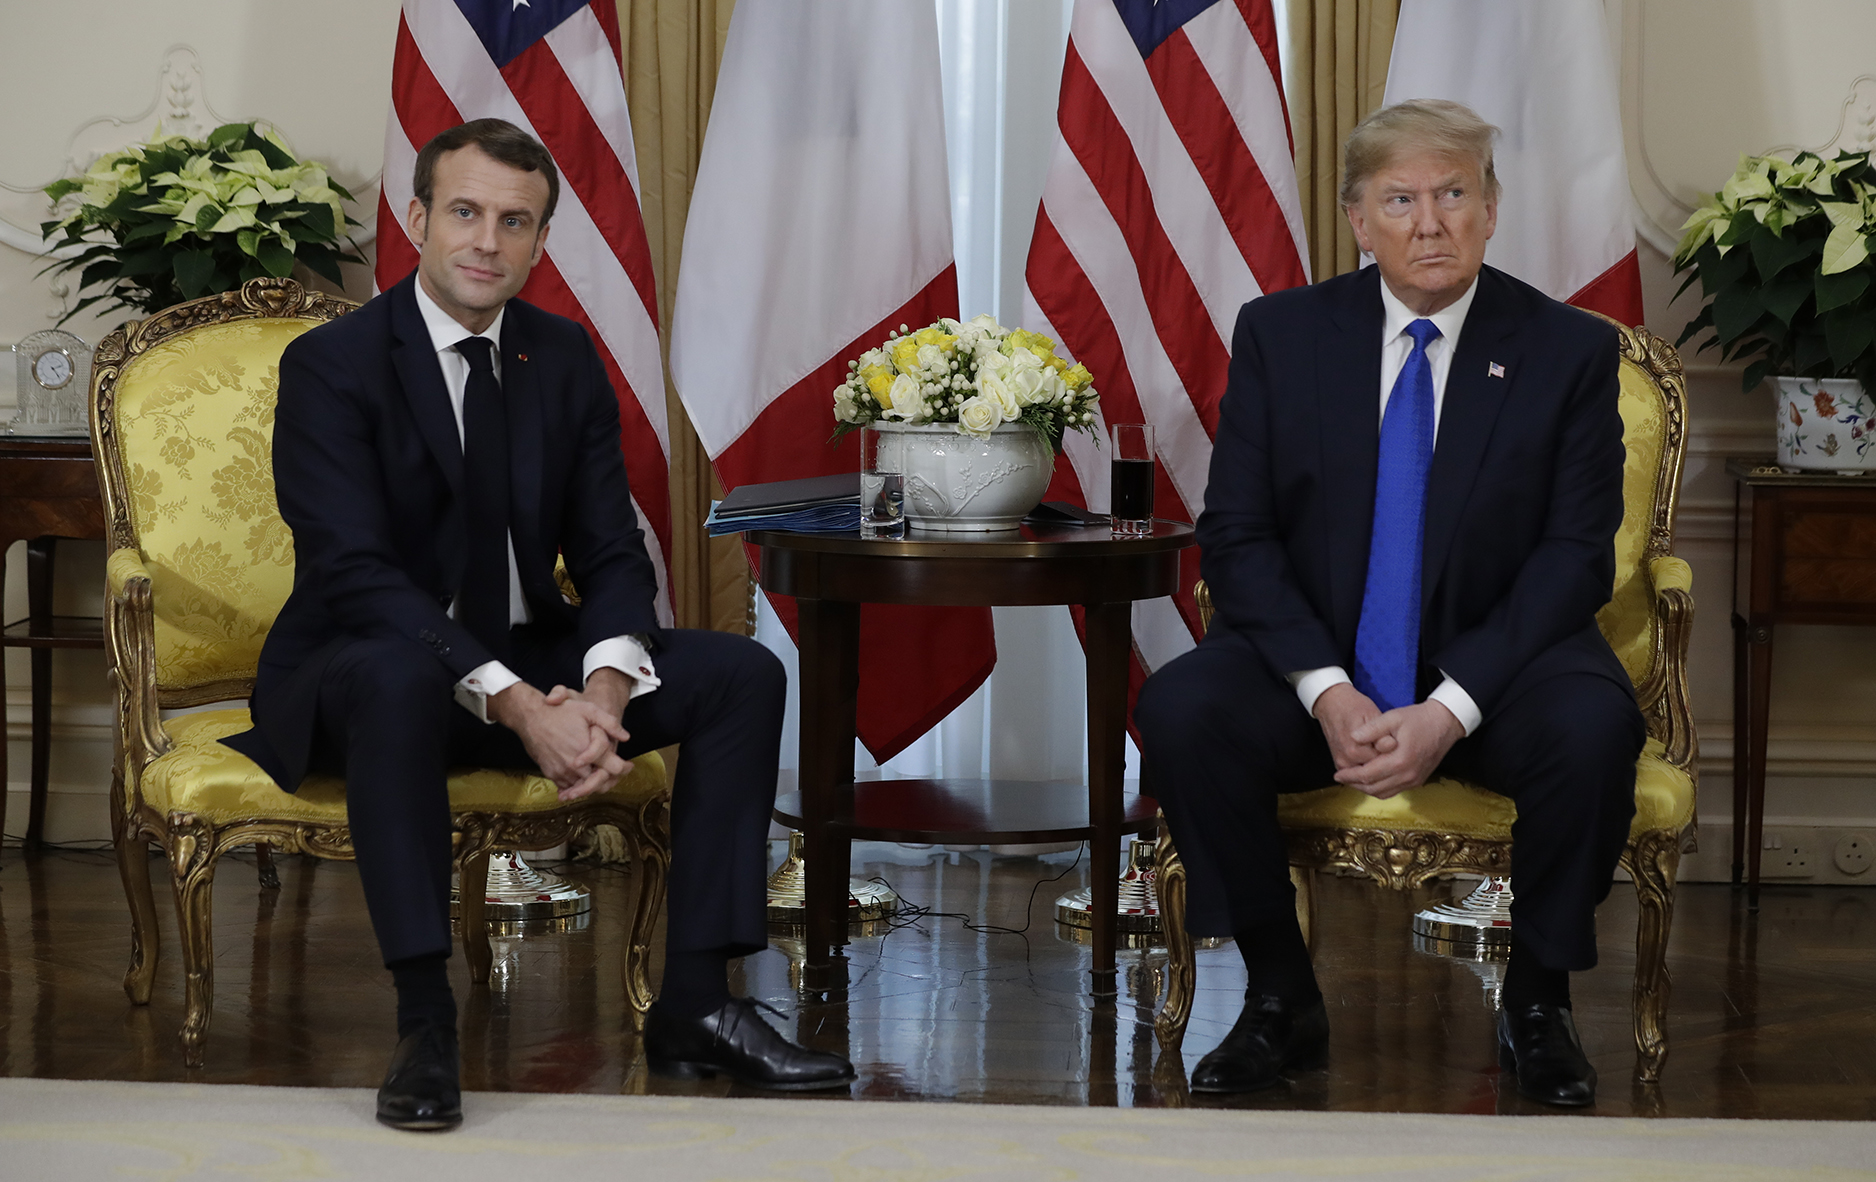 Westlake Legal Group 12_AP19337519358431 France's Macron: If Trump pulls US military out of Africa, it would be 'bad news' Morgan Phillips fox-news/world/world-regions/africa fox-news/world/conflicts fox-news/politics/defense/secretary-of-defense fox-news/politics/defense fox-news/person/emmanuel-macron fox news fnc/world fnc cdd6642d-8868-522d-a2e0-ee6adc58e111 article